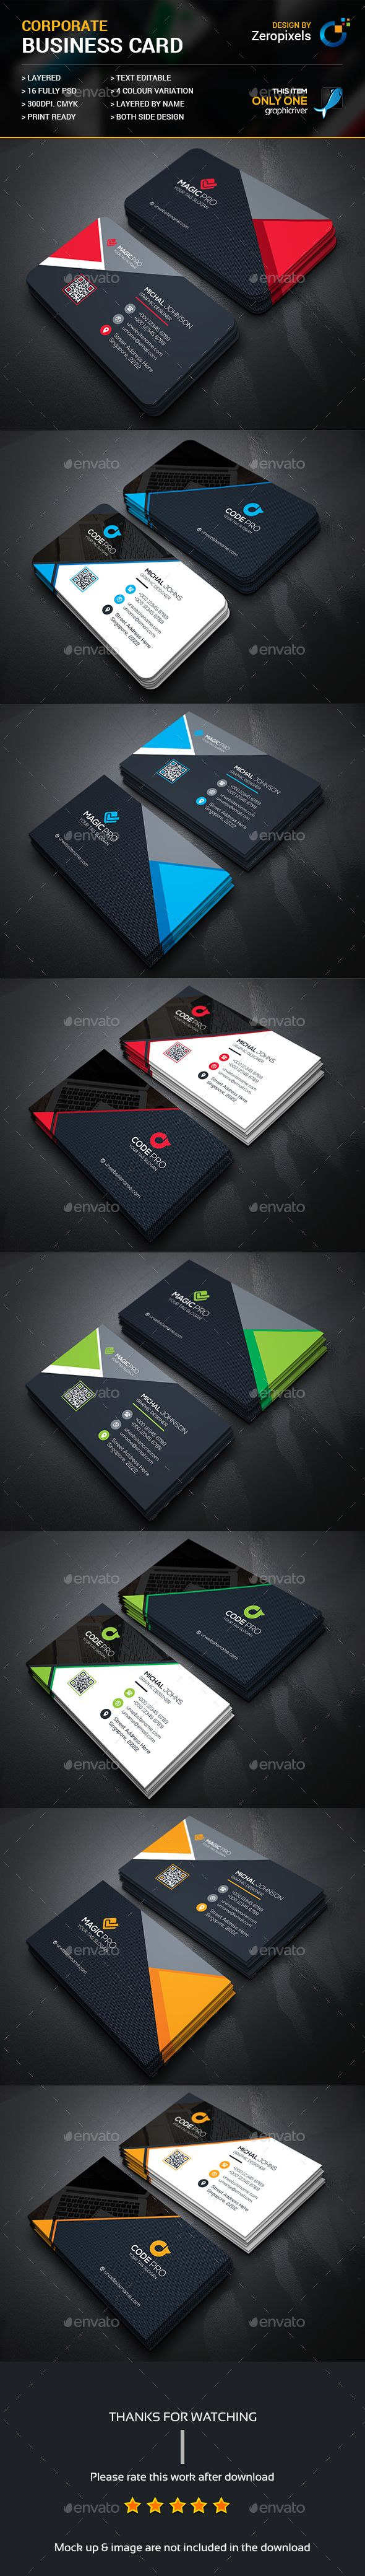 Business card templates psd bundle download here https buy business card bundle by zeropixels on graphicriver features easy customizable and editable business card in with bleed cmyk color design in 300 dpi reheart Gallery